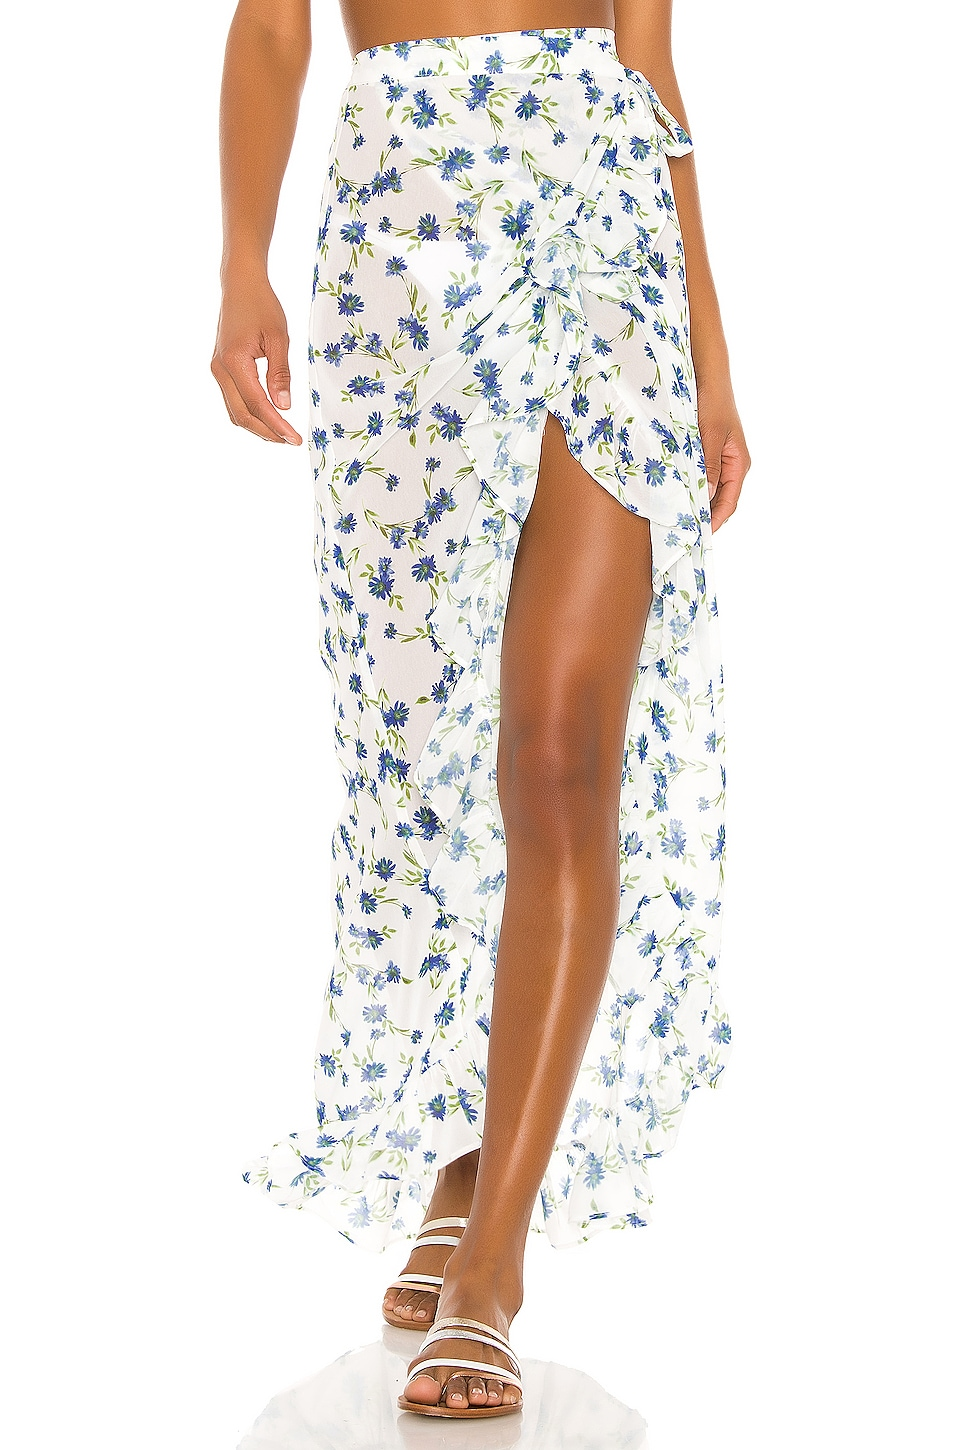 Tularosa Nala Wrap Skirt in Forget Me Not Floral